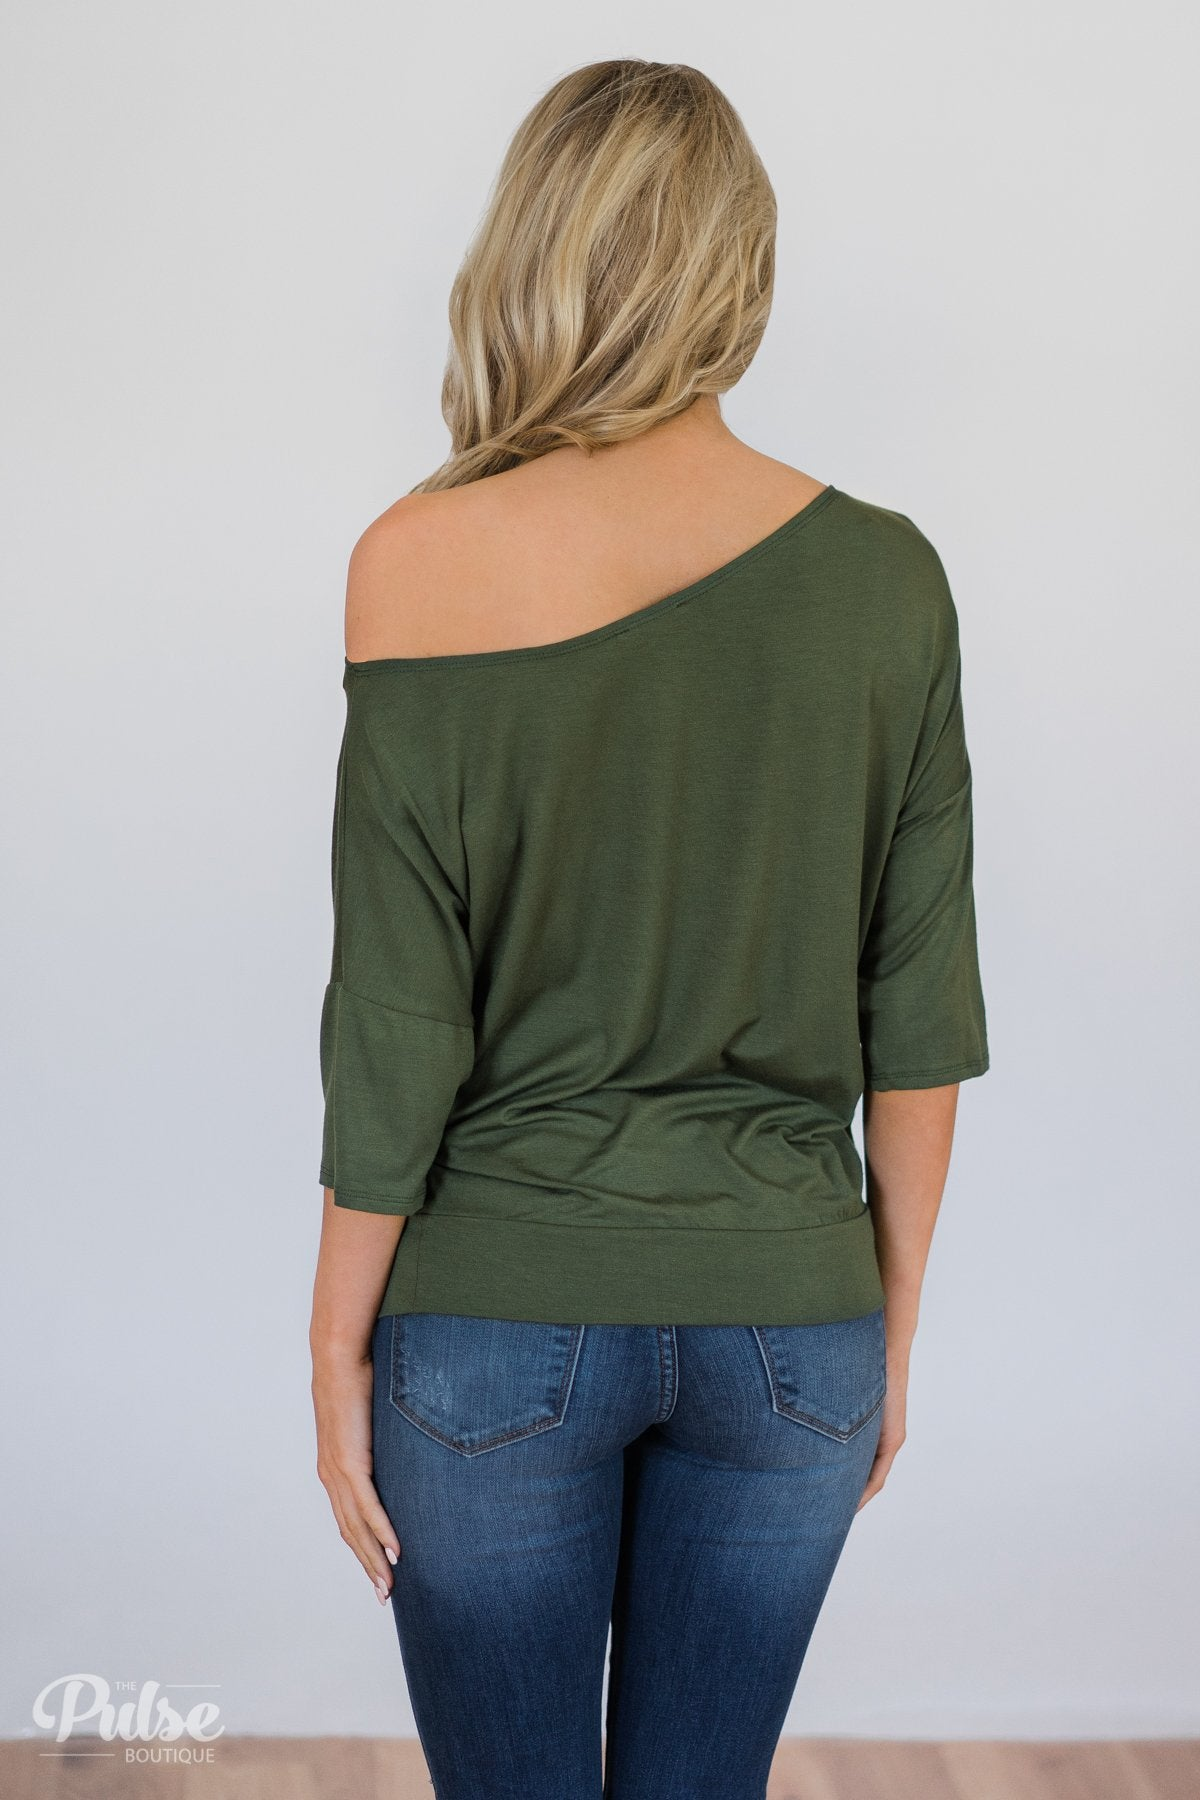 fa05a0f28b08 Mark My Words One Shoulder Top- Hunter Green – The Pulse Boutique